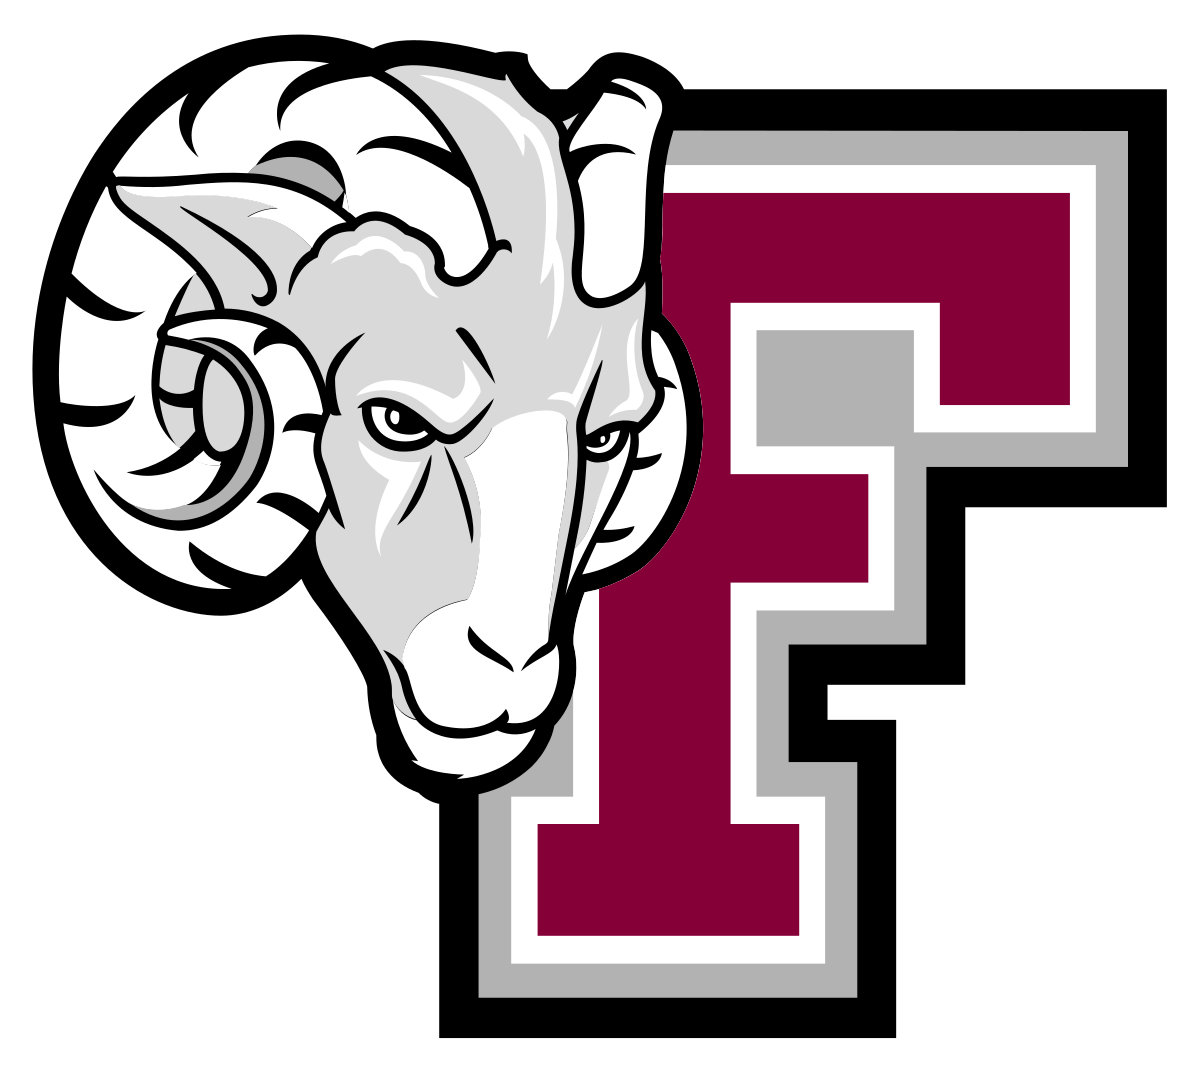 Rams football logo clipart free download Fordham Rams - Wikipedia free download